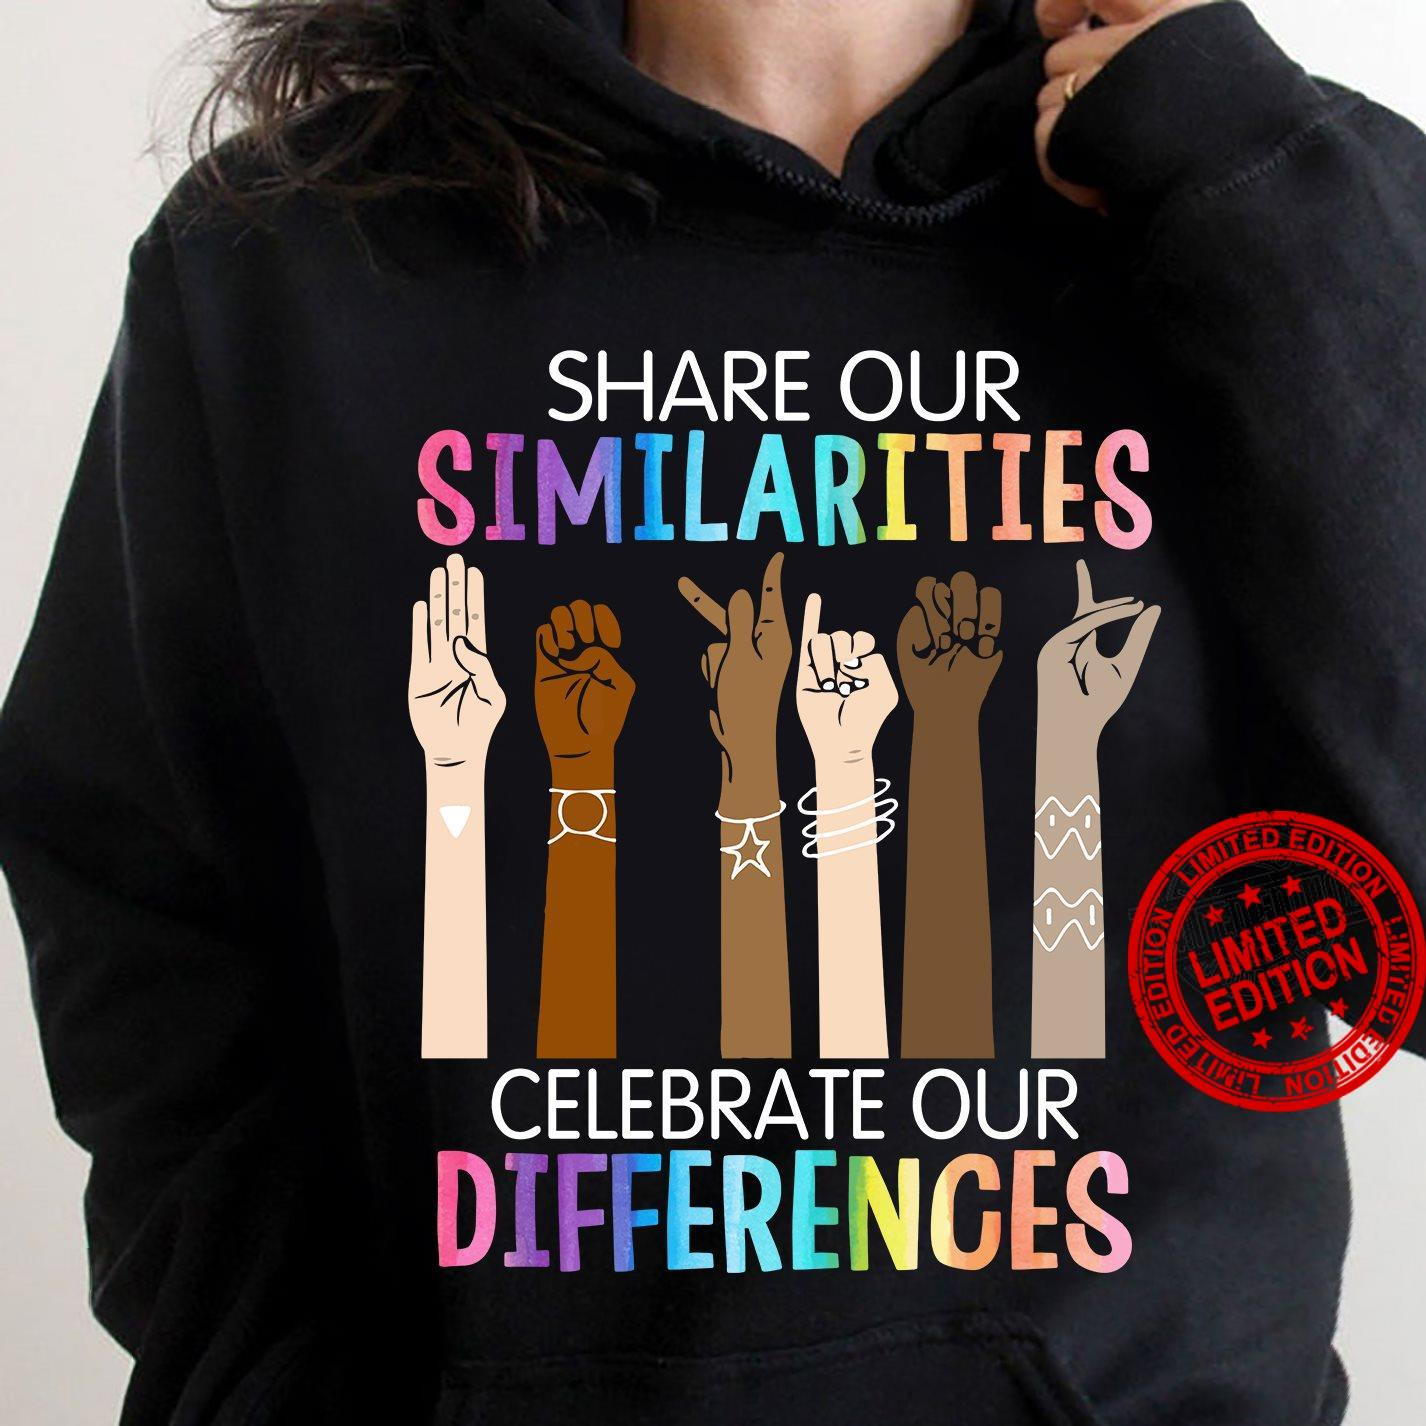 Share Our Similarities Celebrate Our Differences Shirt